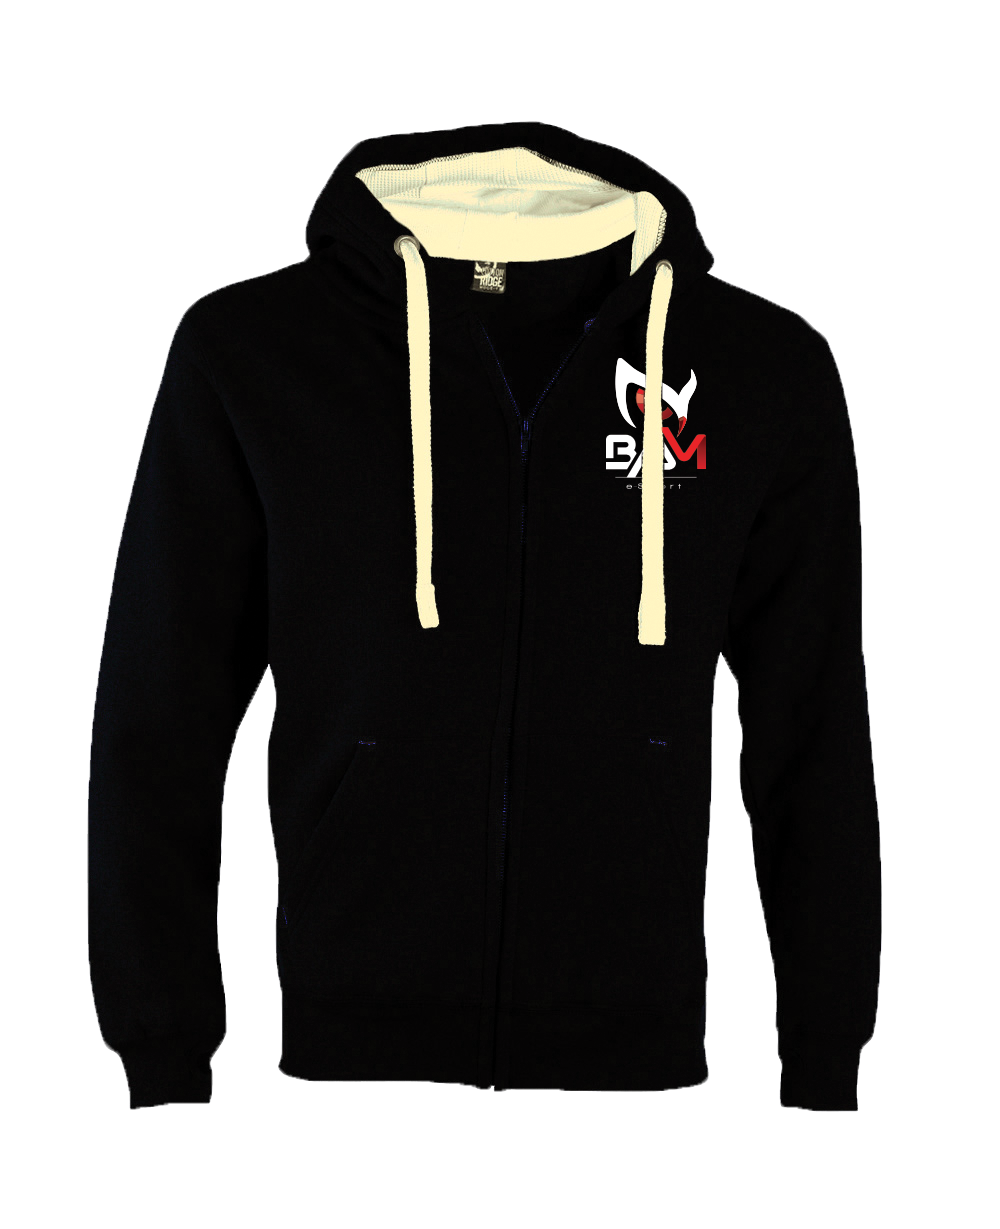 Sweat DELUXE ZIP Noir - BAM ESPORT Noir Noir